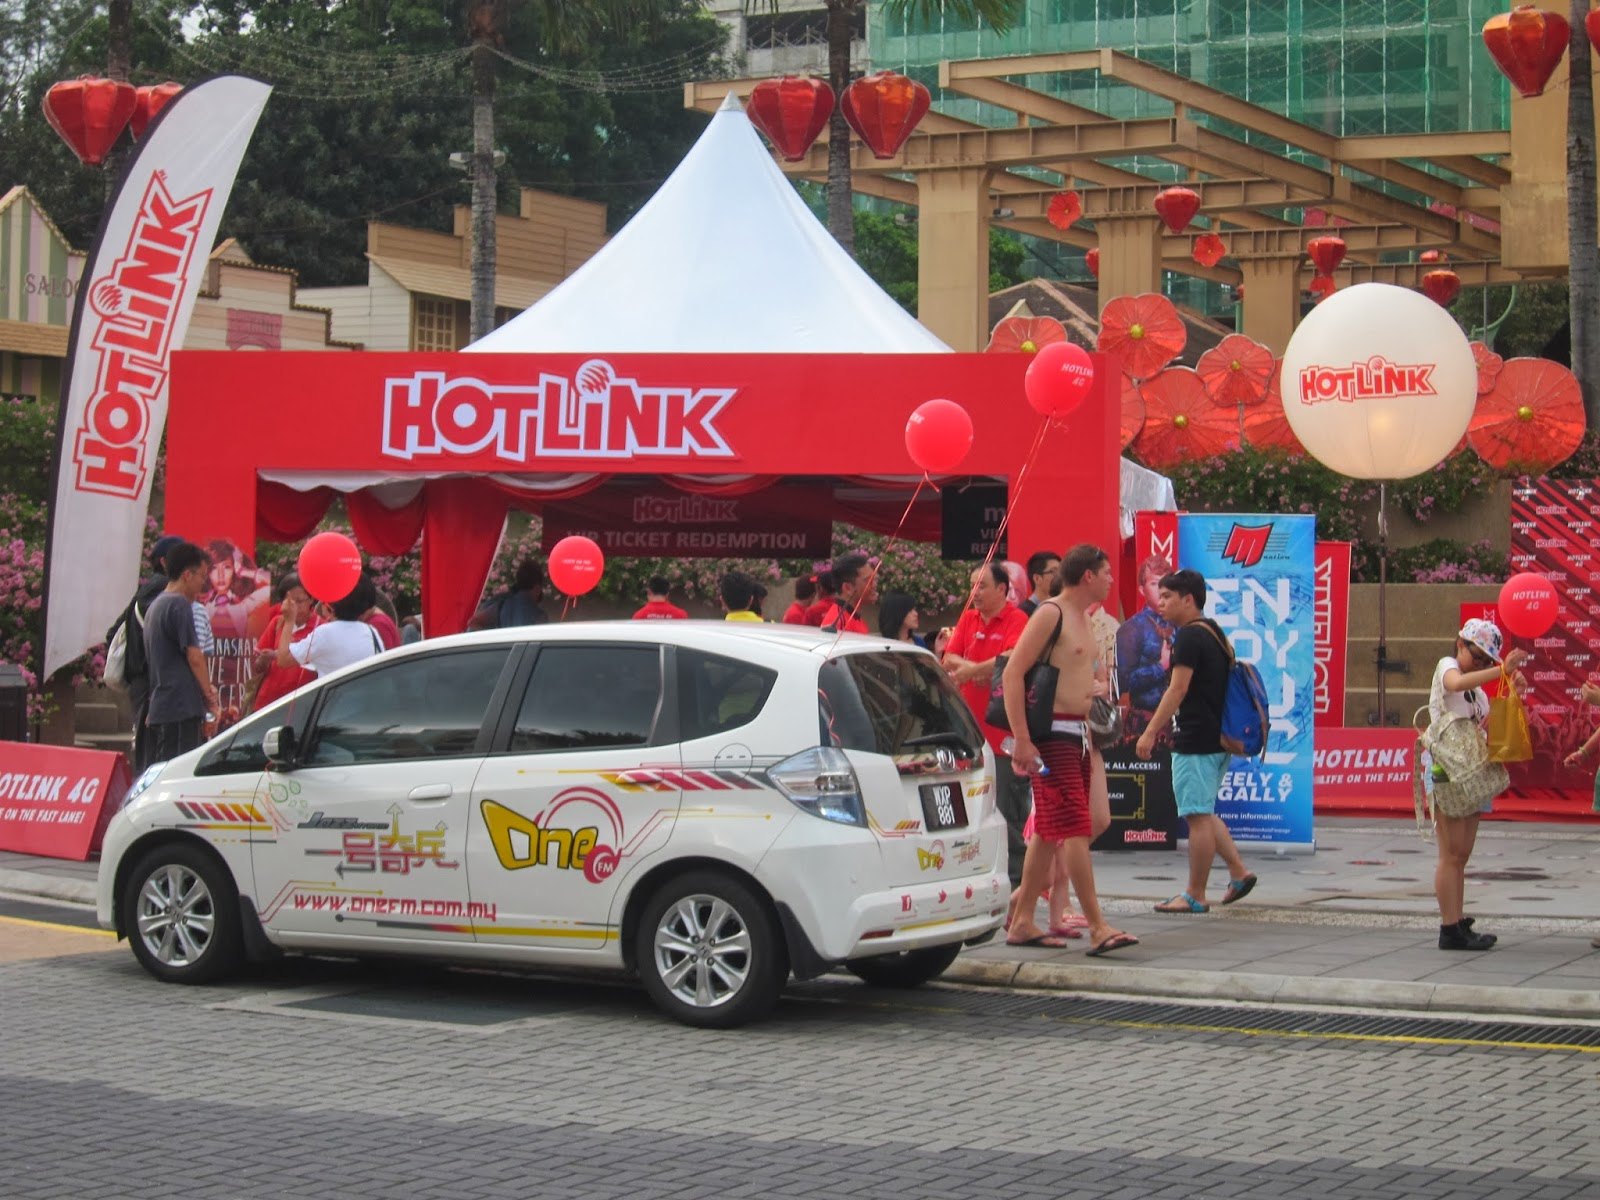 Hotlink 4G (Live in concert) Booth @Sunway Lagoon